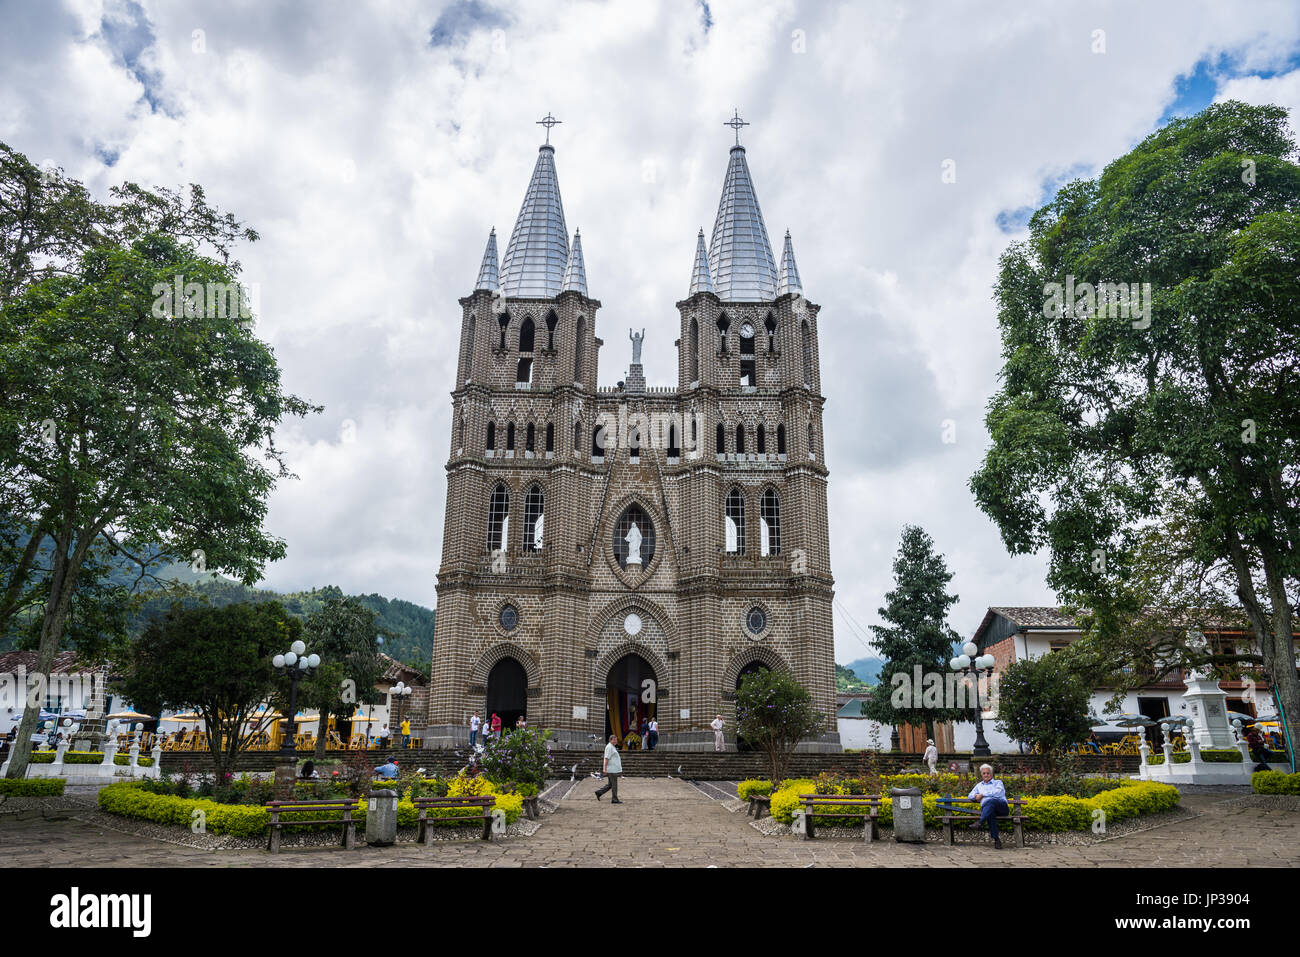 Church at historic town center of small town Jardin, Colombia, South America - Stock Image